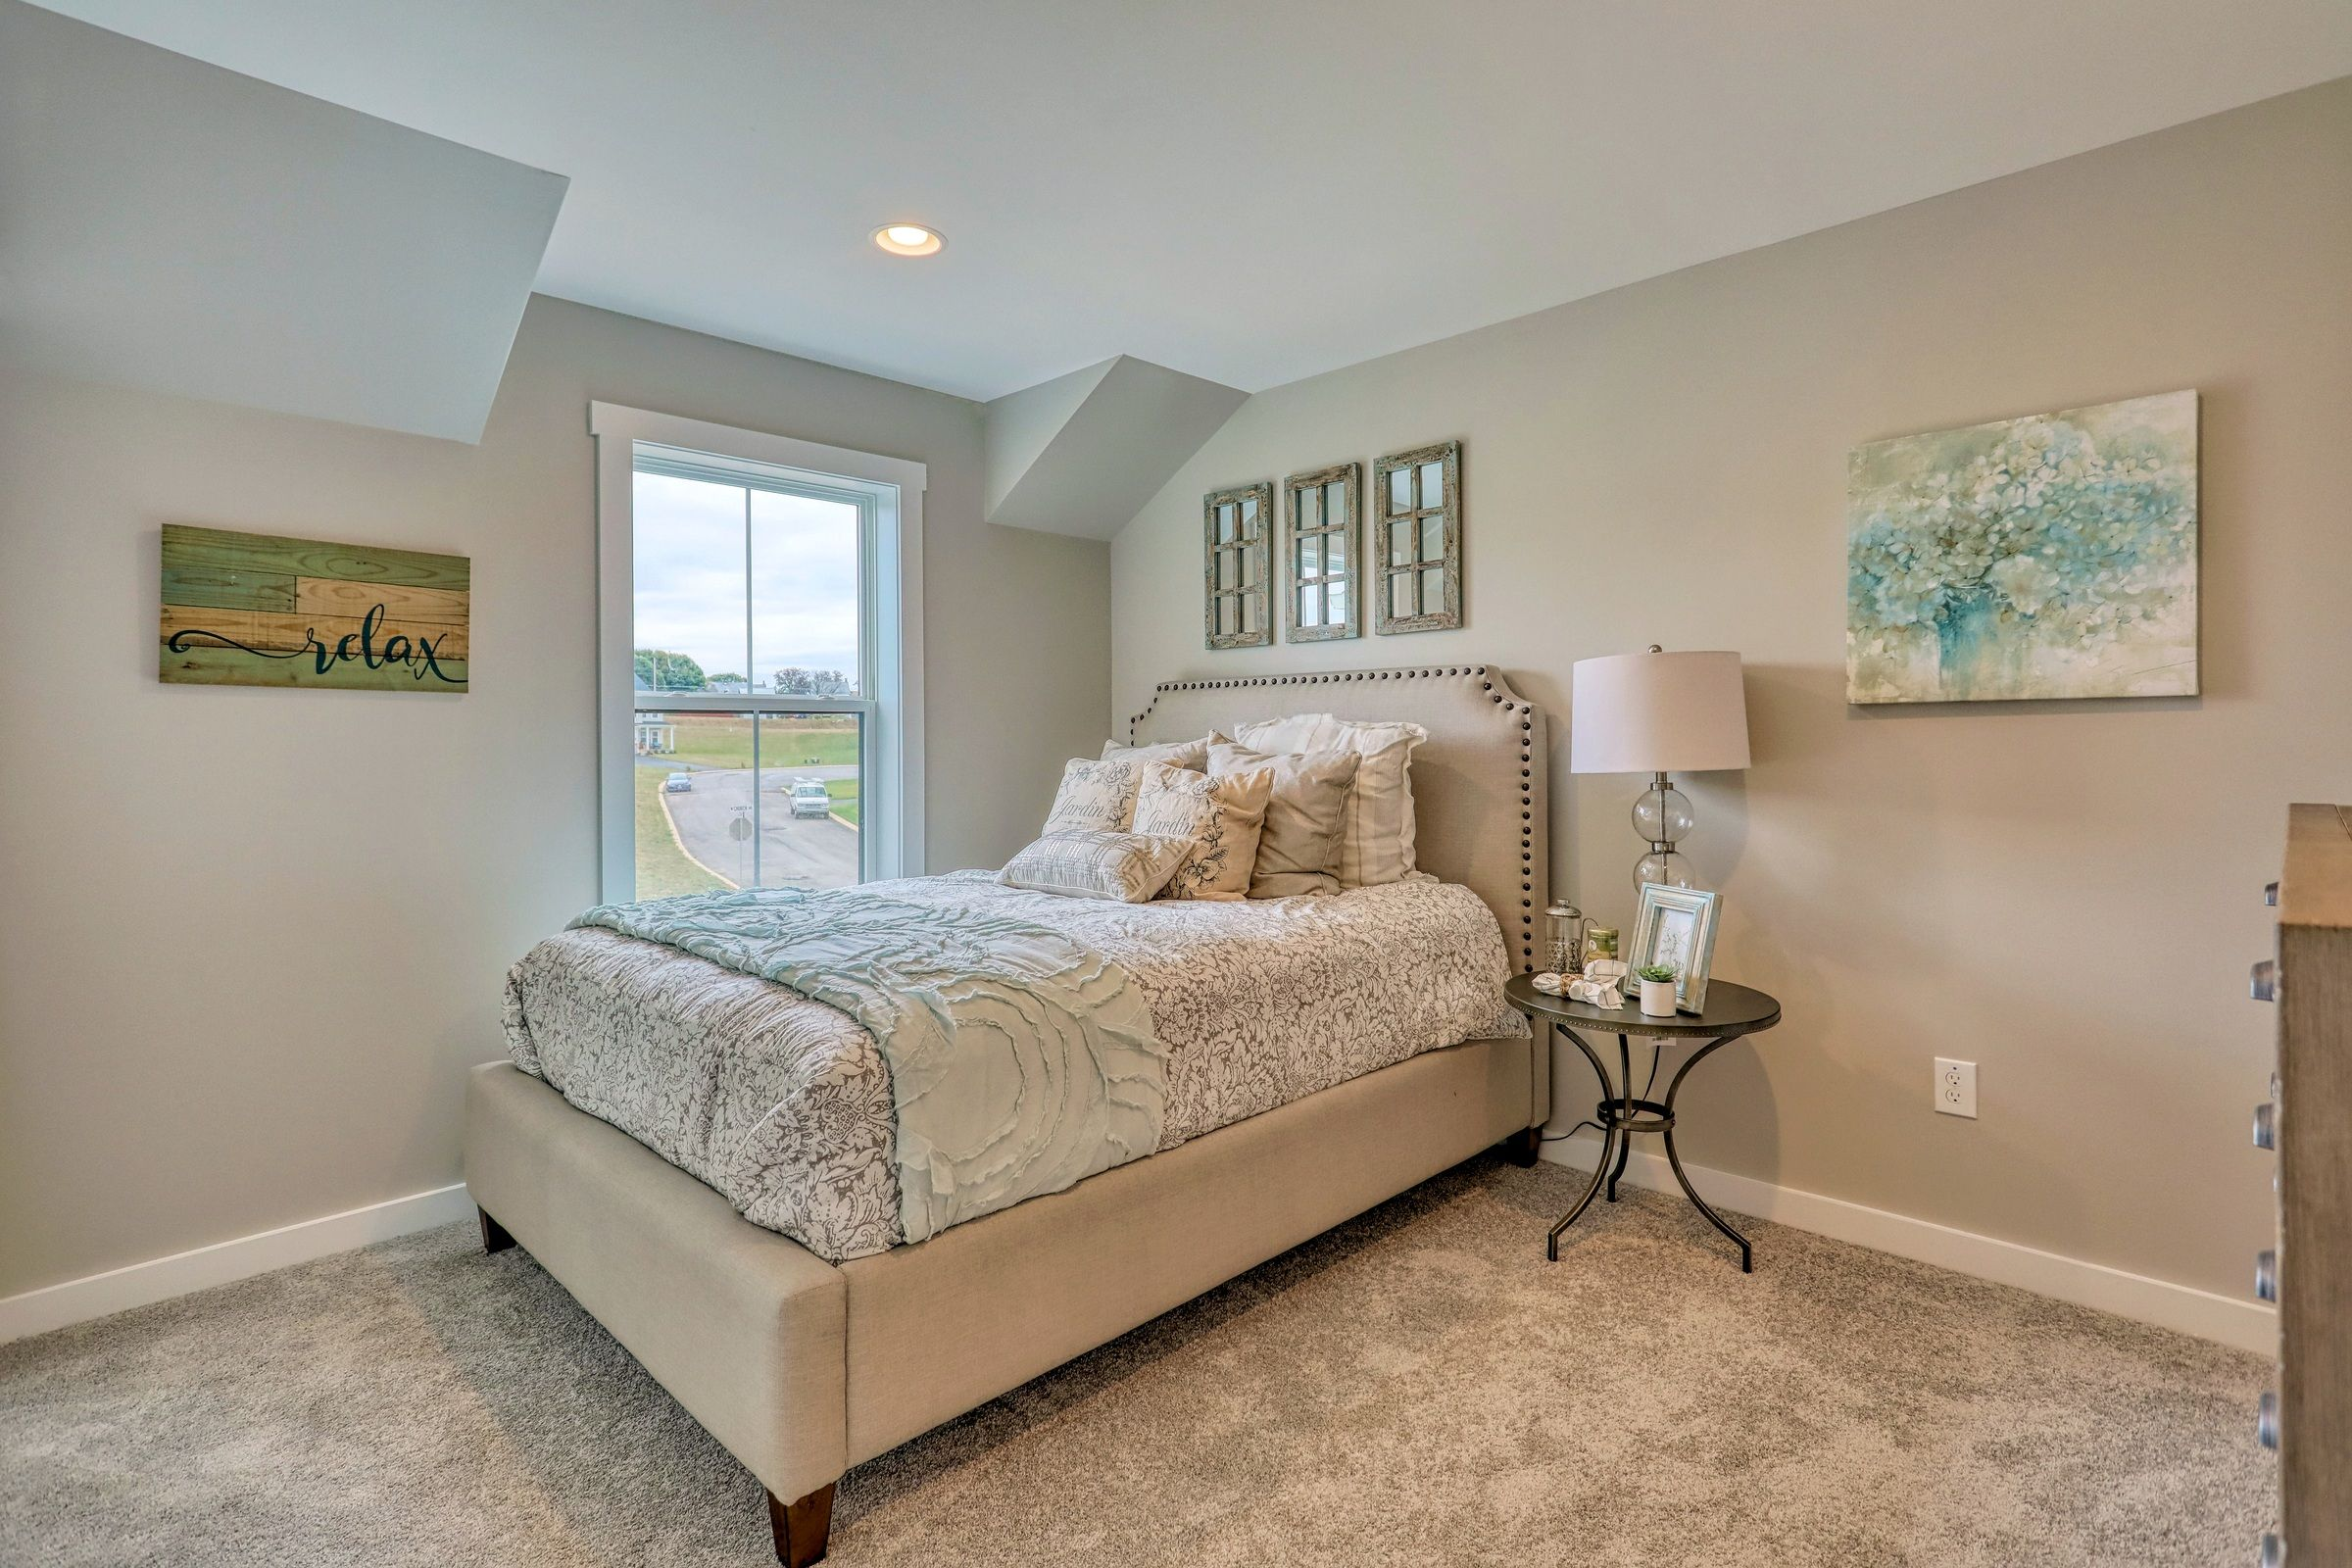 Bedroom featured in the Addison Traditional By Keystone Custom Homes in York, PA